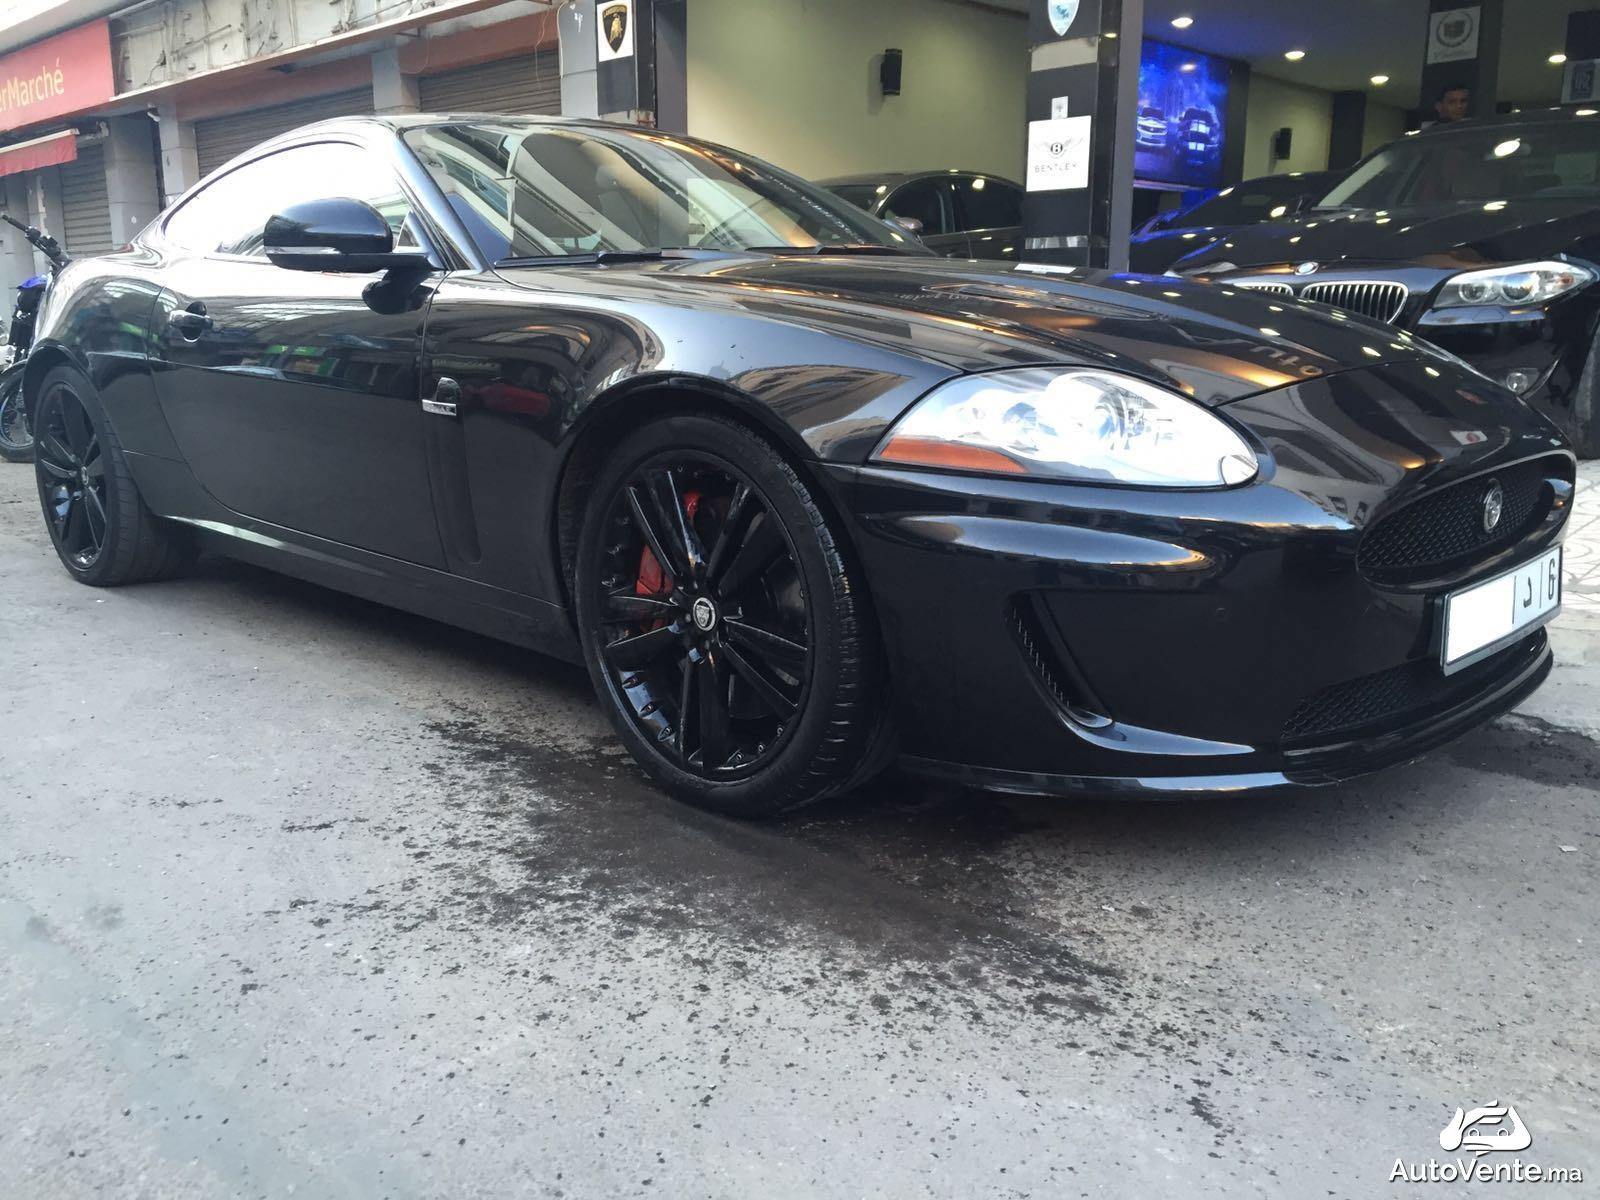 acheter jaguar xkr d 39 occasion a casablanca maroc autovente. Black Bedroom Furniture Sets. Home Design Ideas